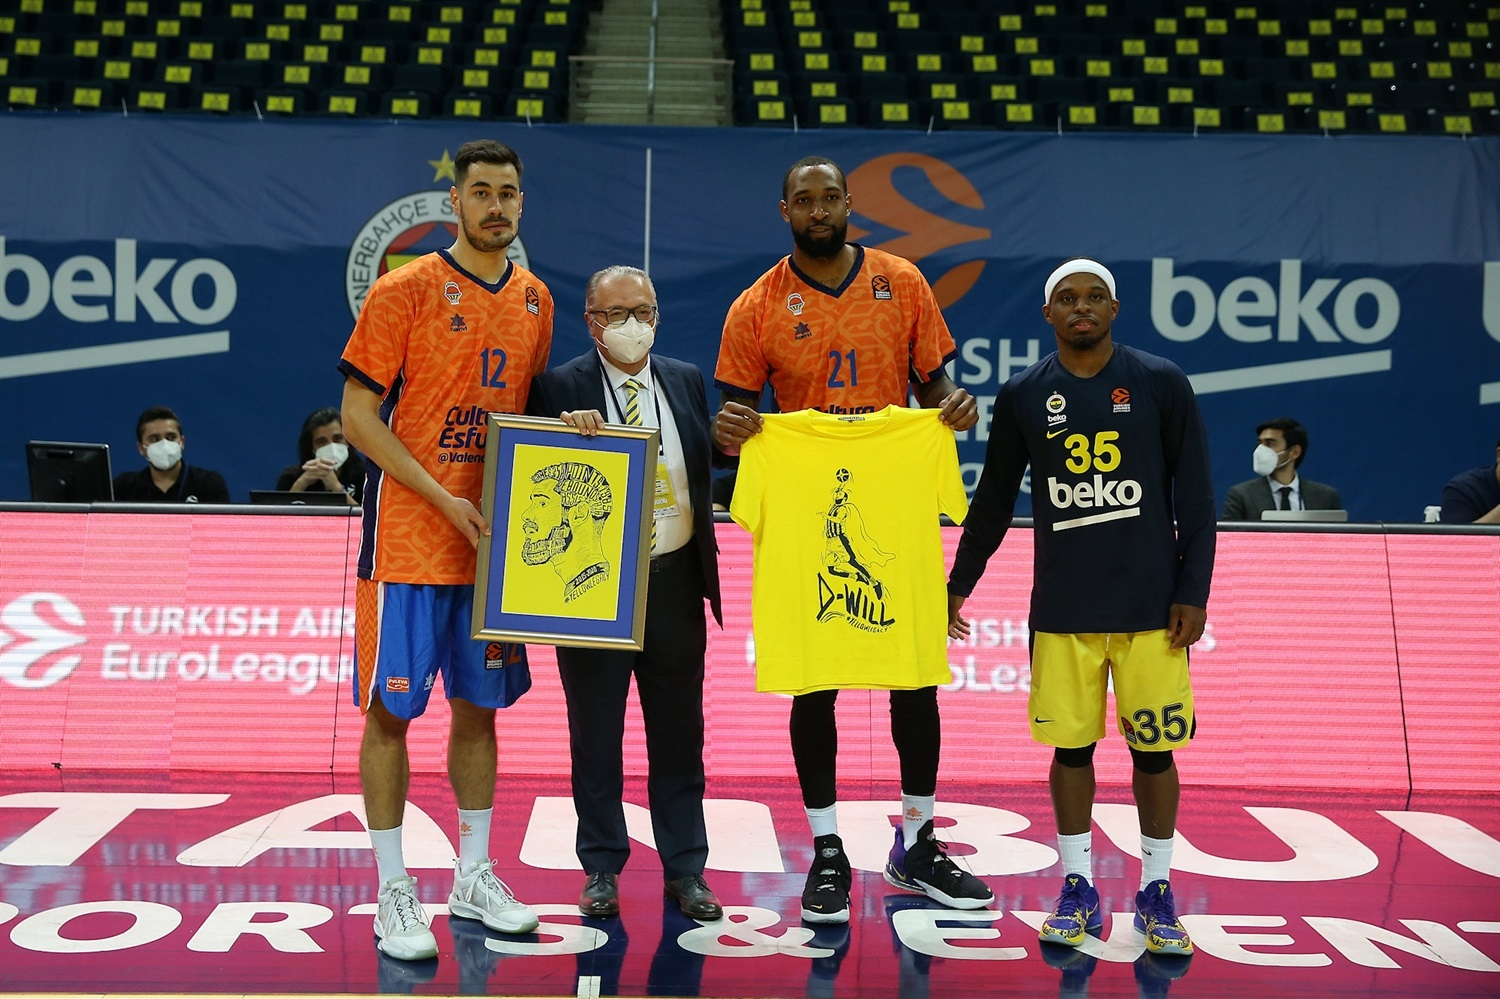 Nikola Kalinic and Derrick Williams return Istanbul - Valencia Basket - EB20